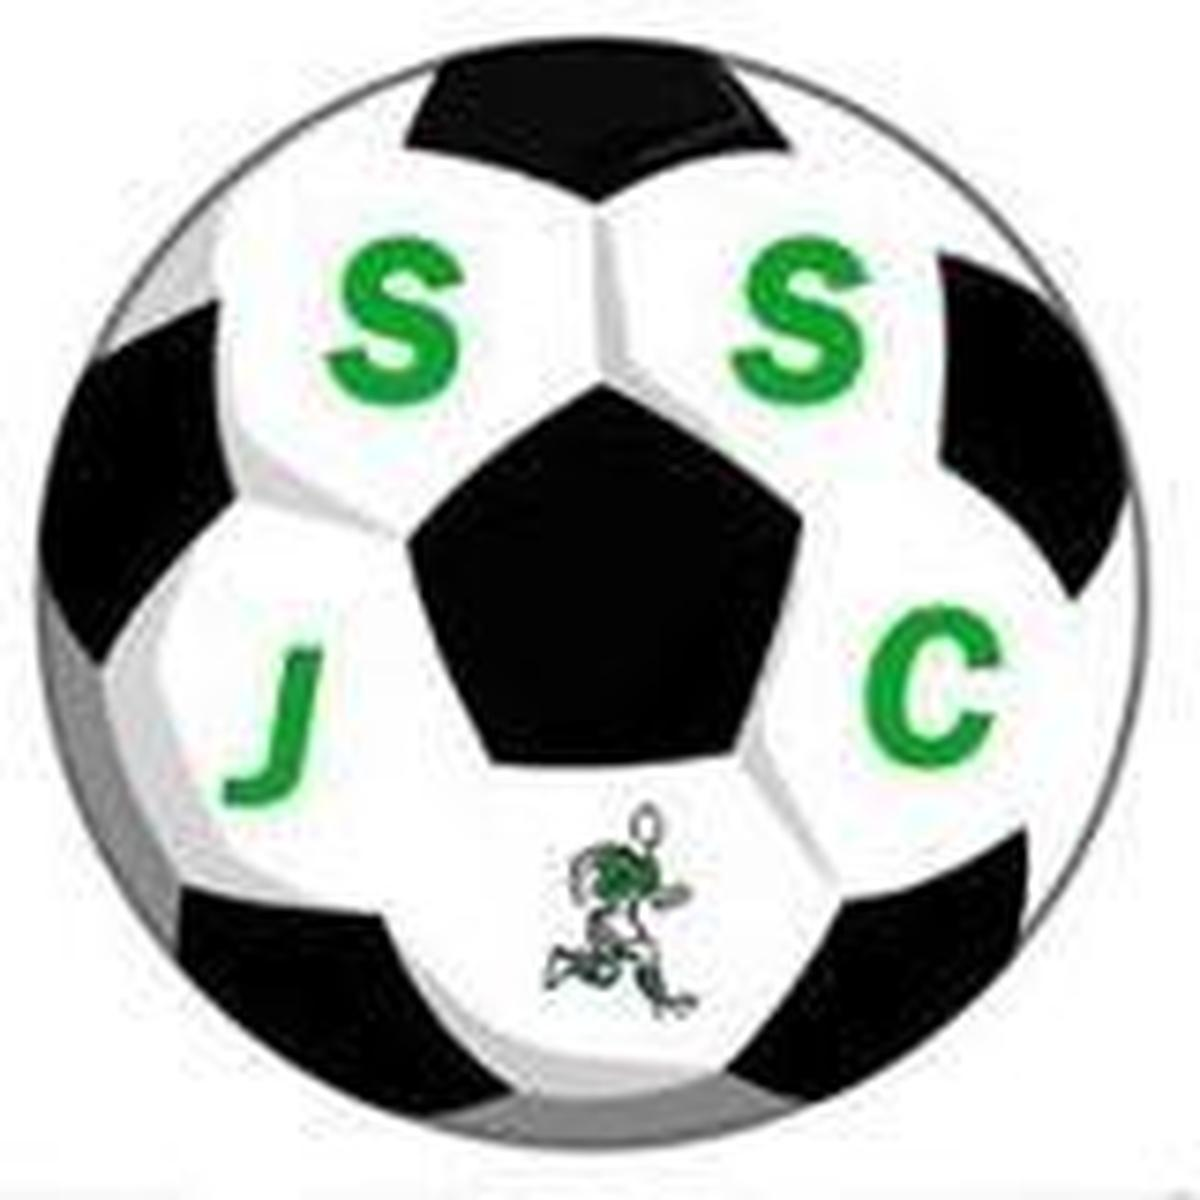 SAINT SEURIN JUNIOR CLUB